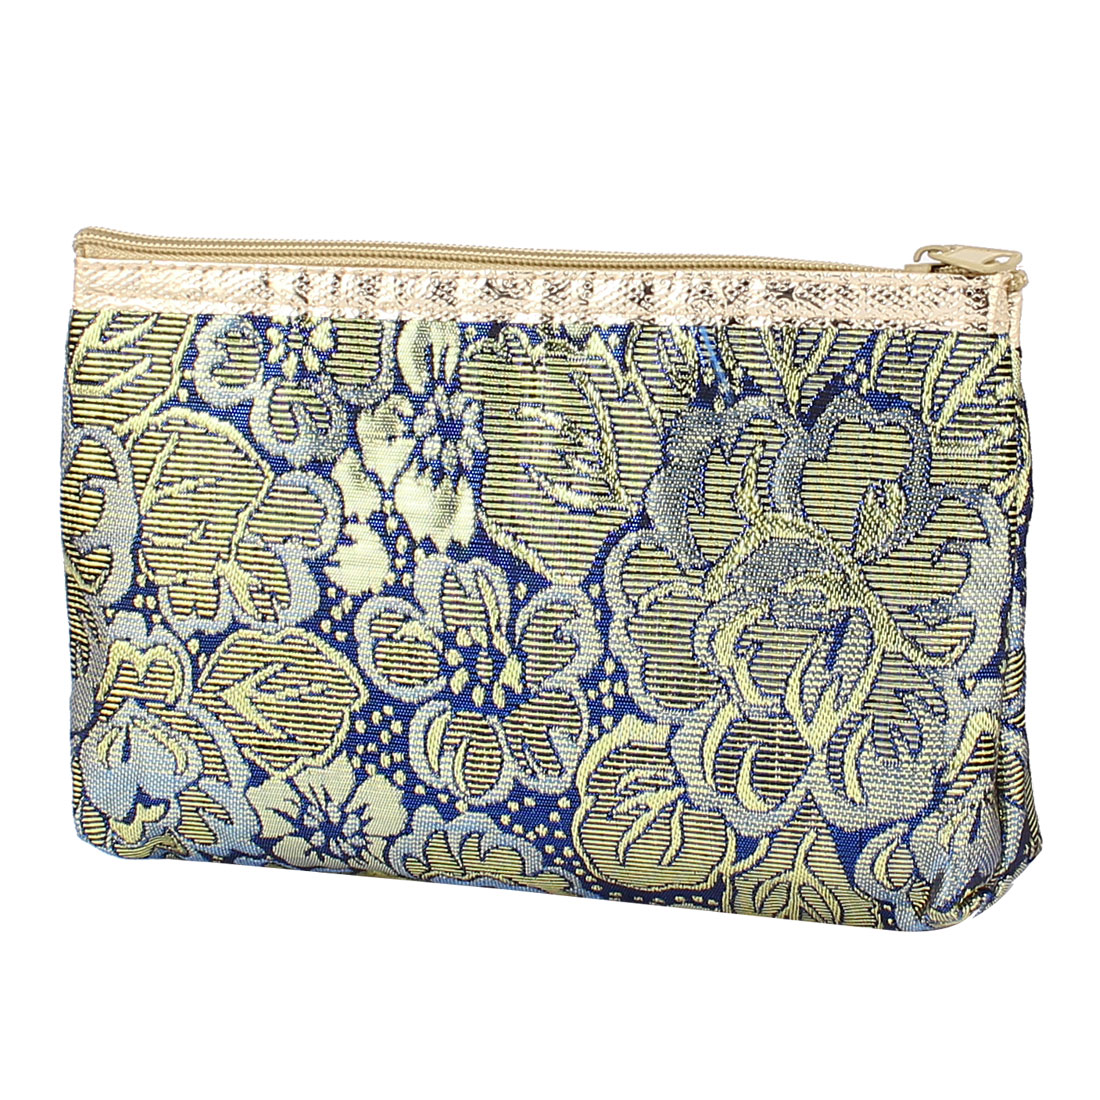 Gold Tone Blue Embroidery Travel Cosmetic Bag Makeup Case Toiletry Organizer